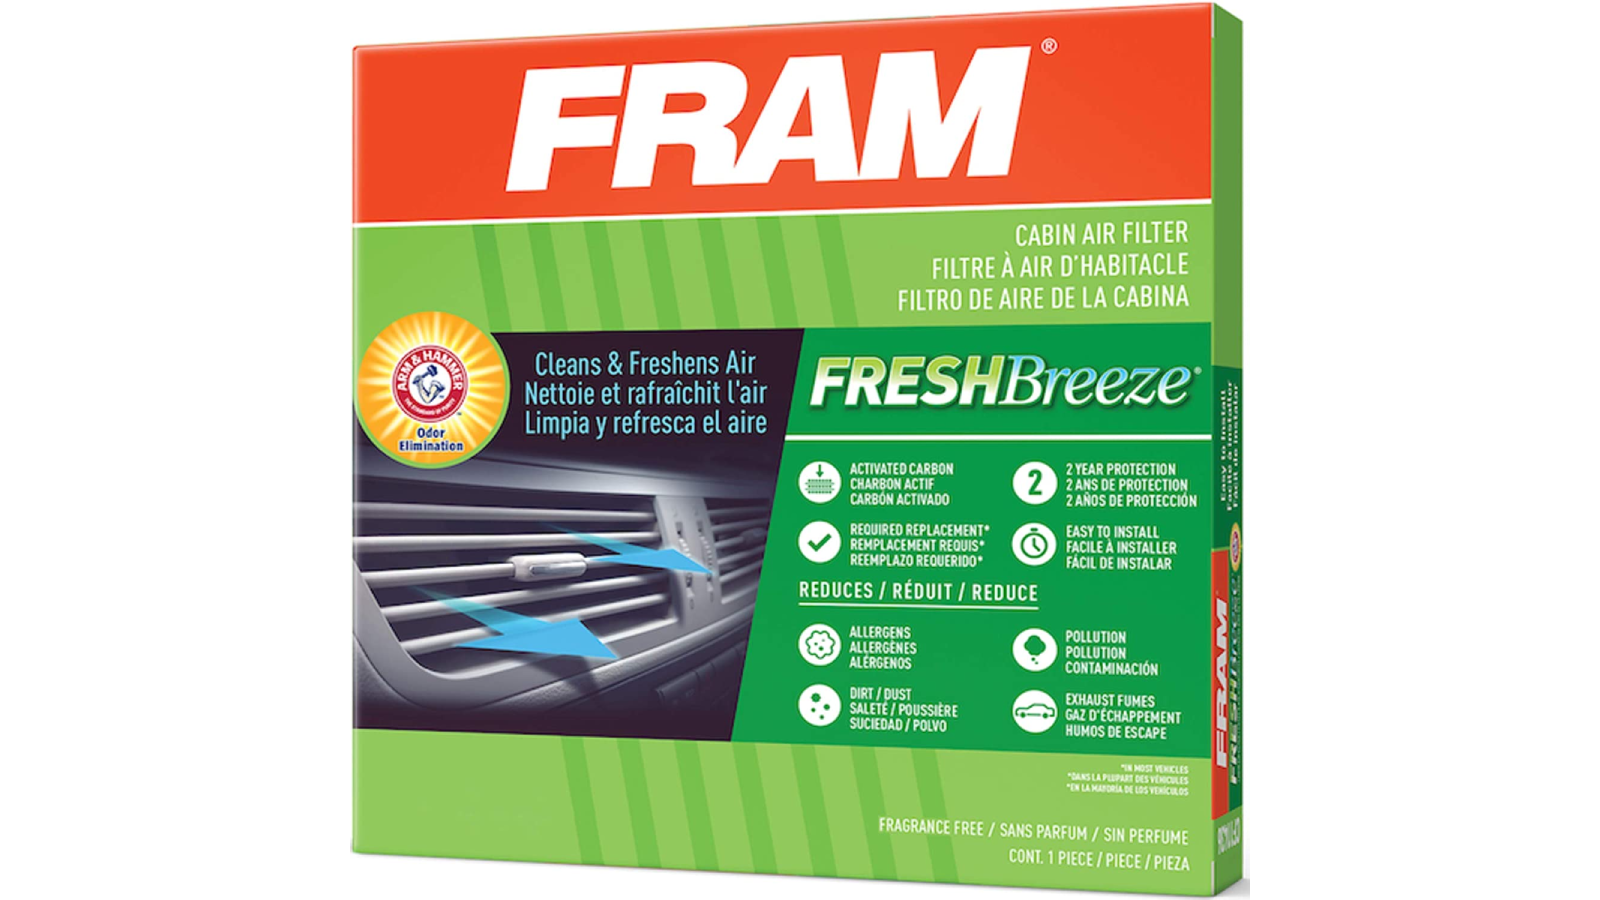 Image of front of FRAM car air filter package